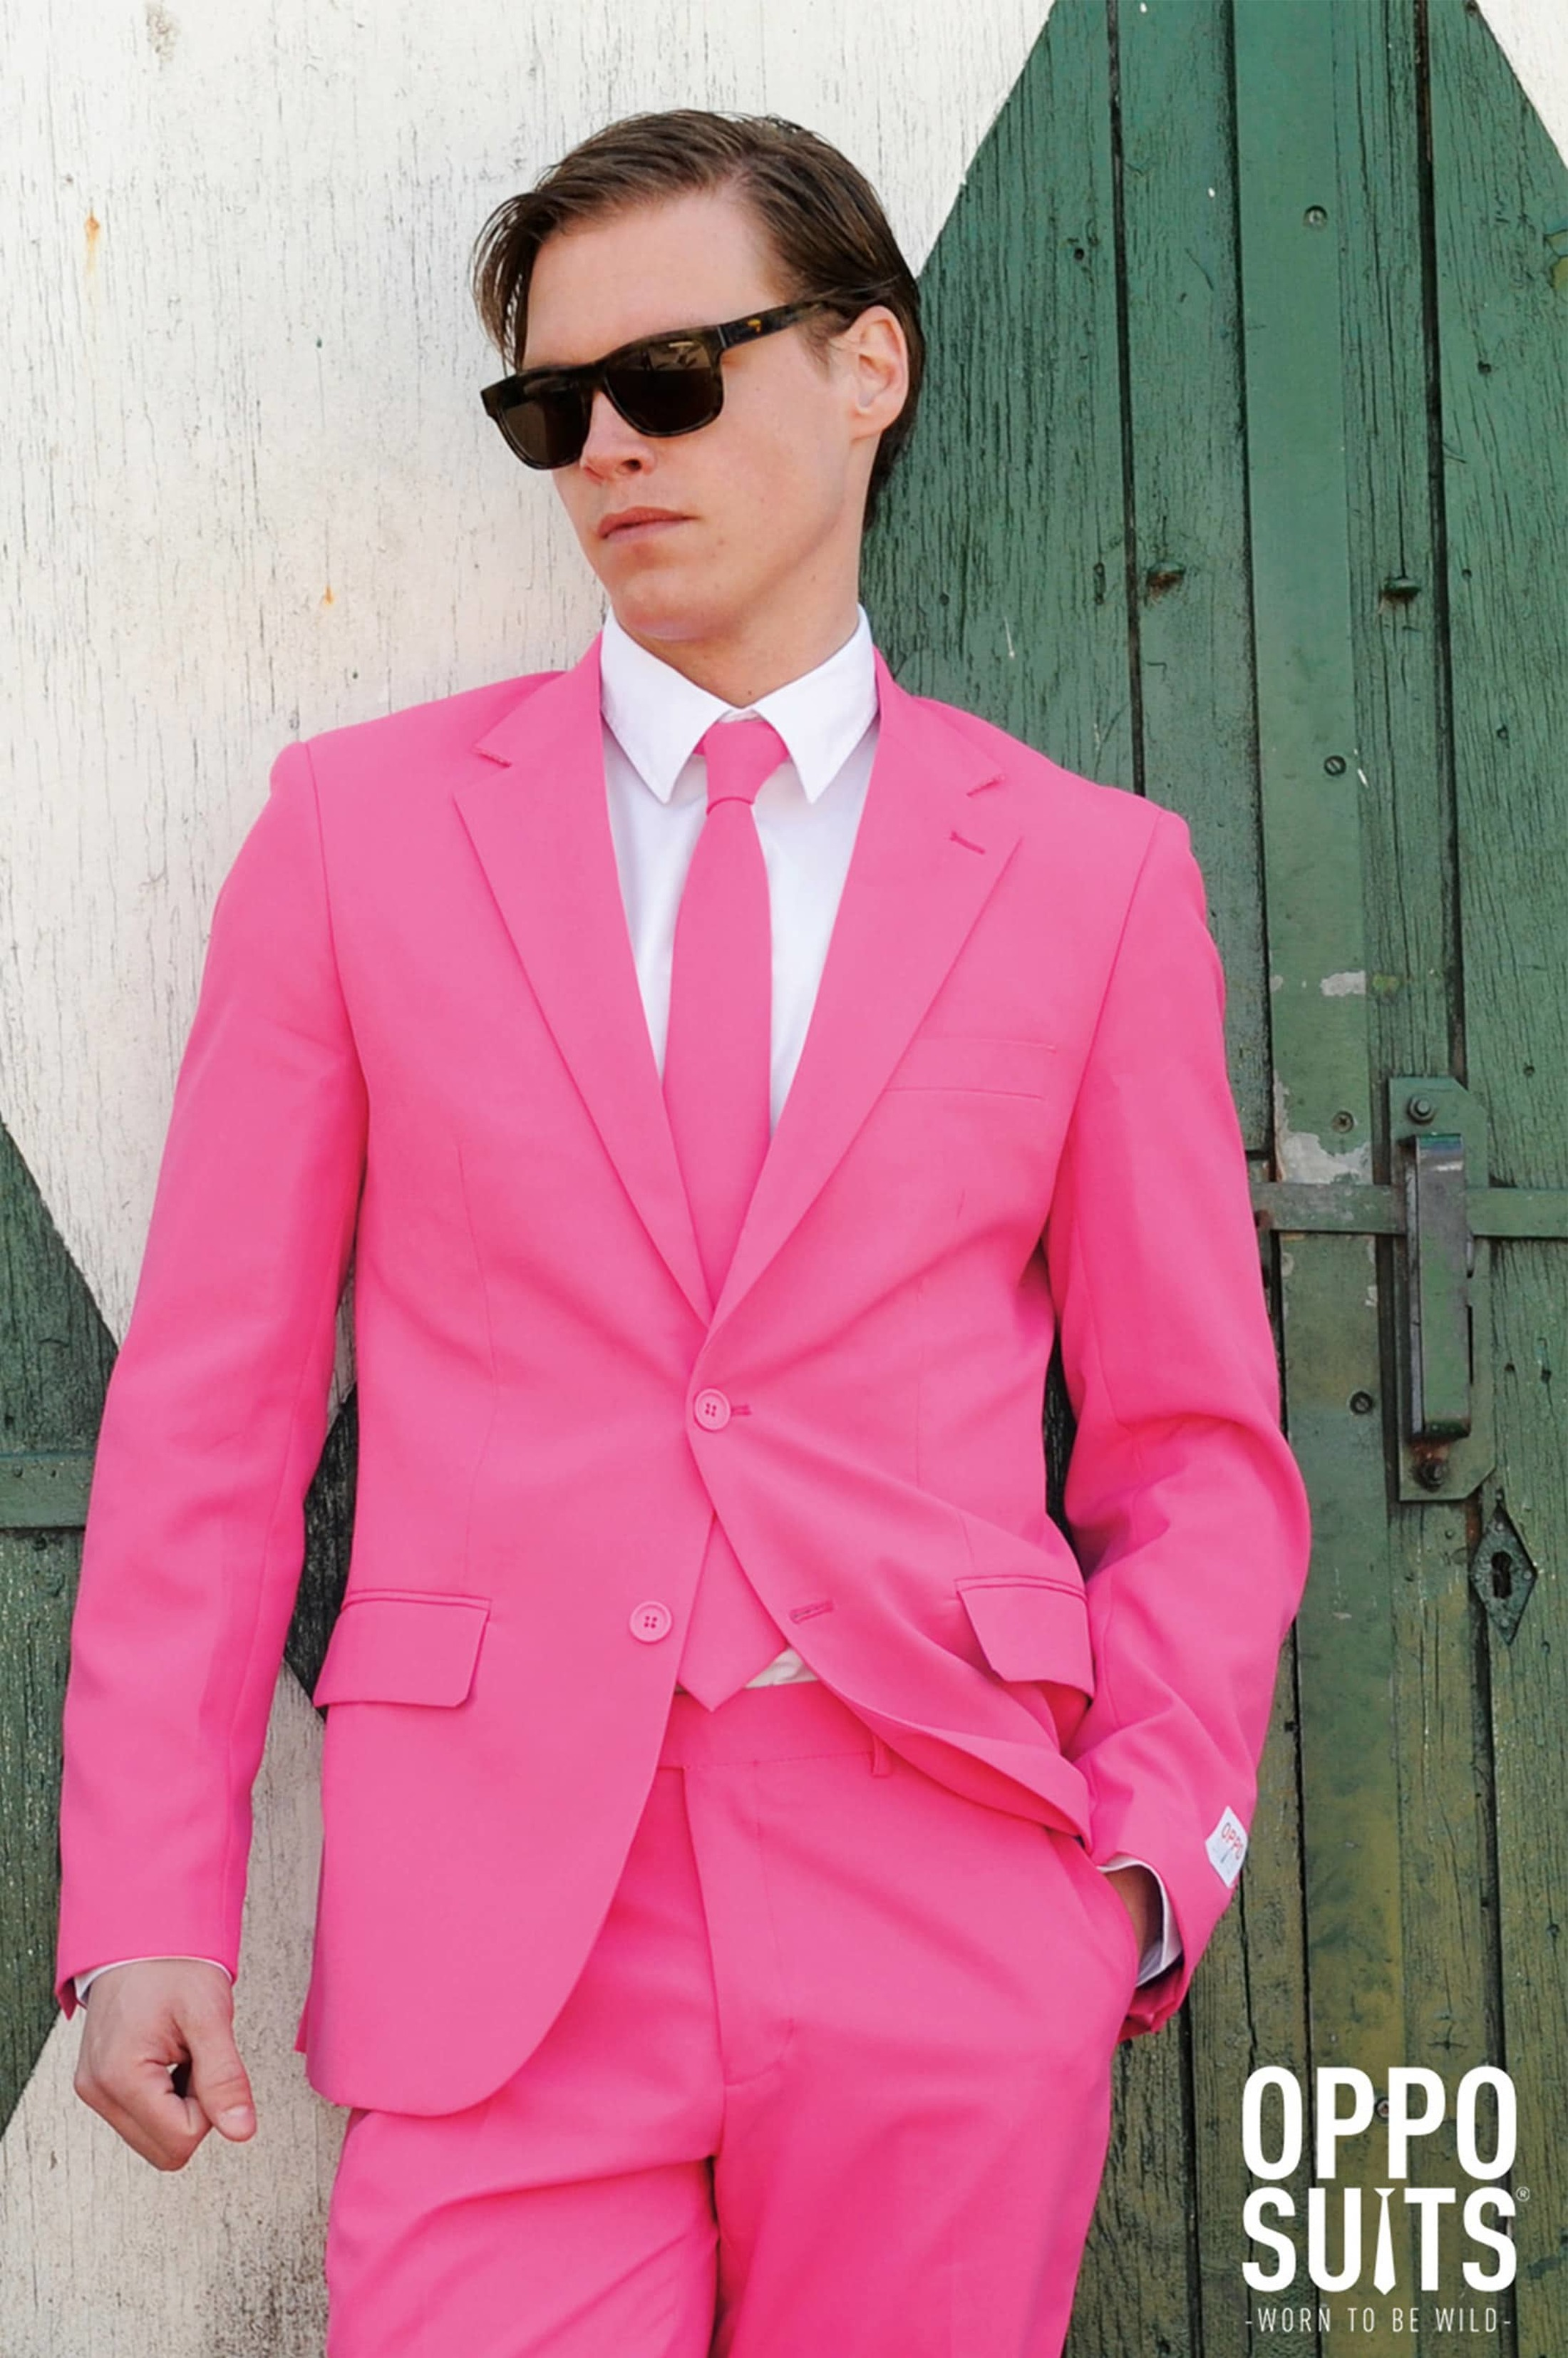 OppoSuits Mr Pink Suit foto 2